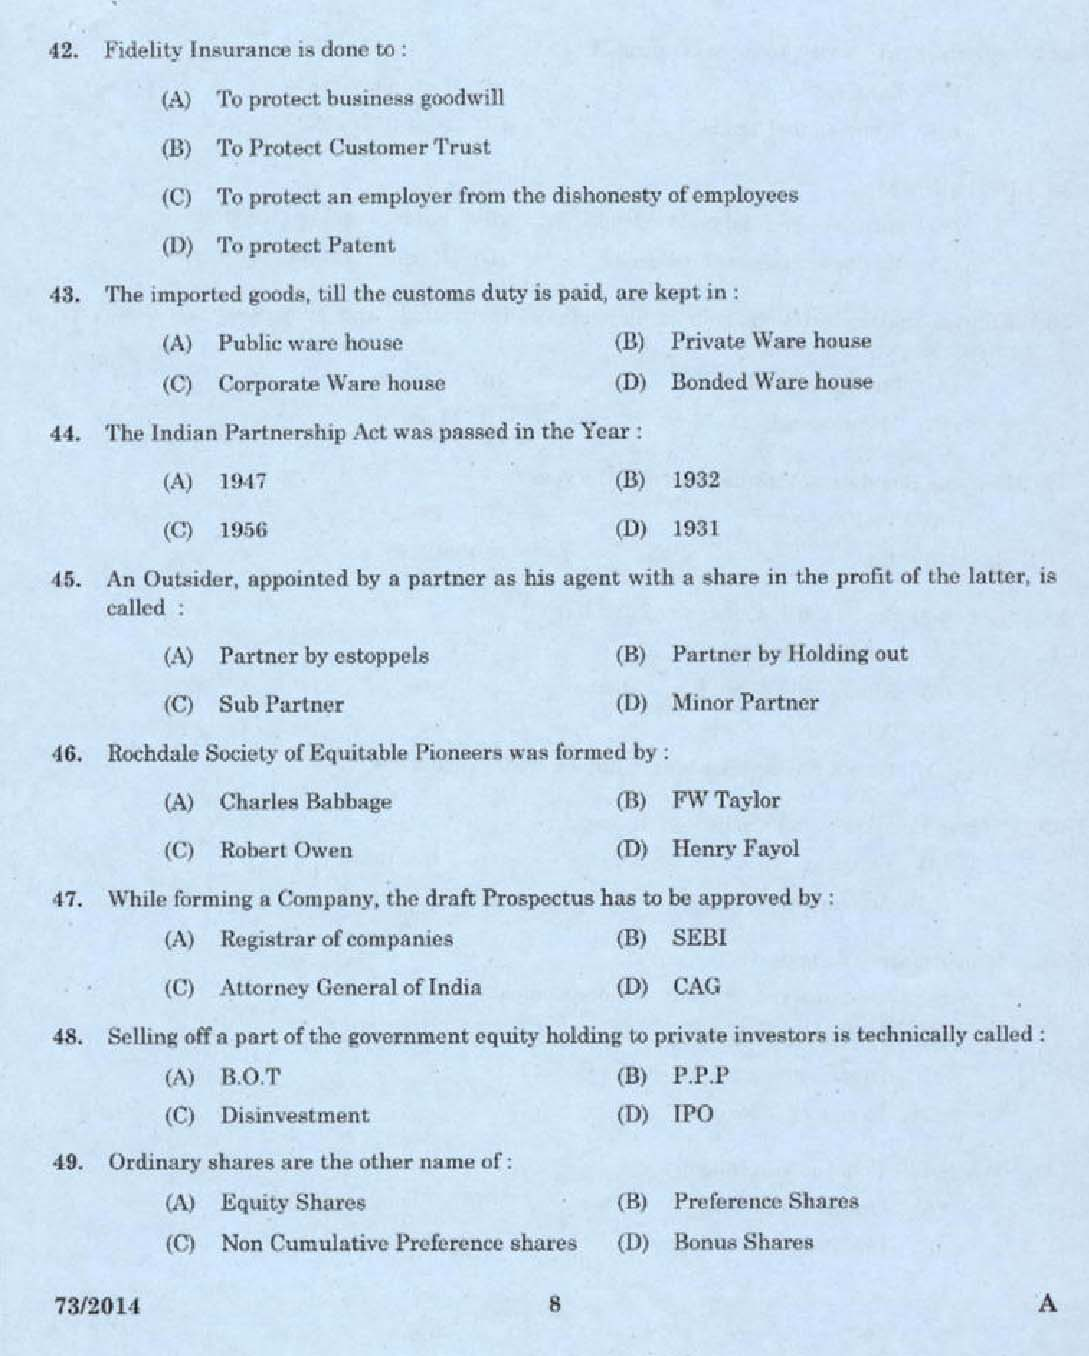 custom house agent exam question papers